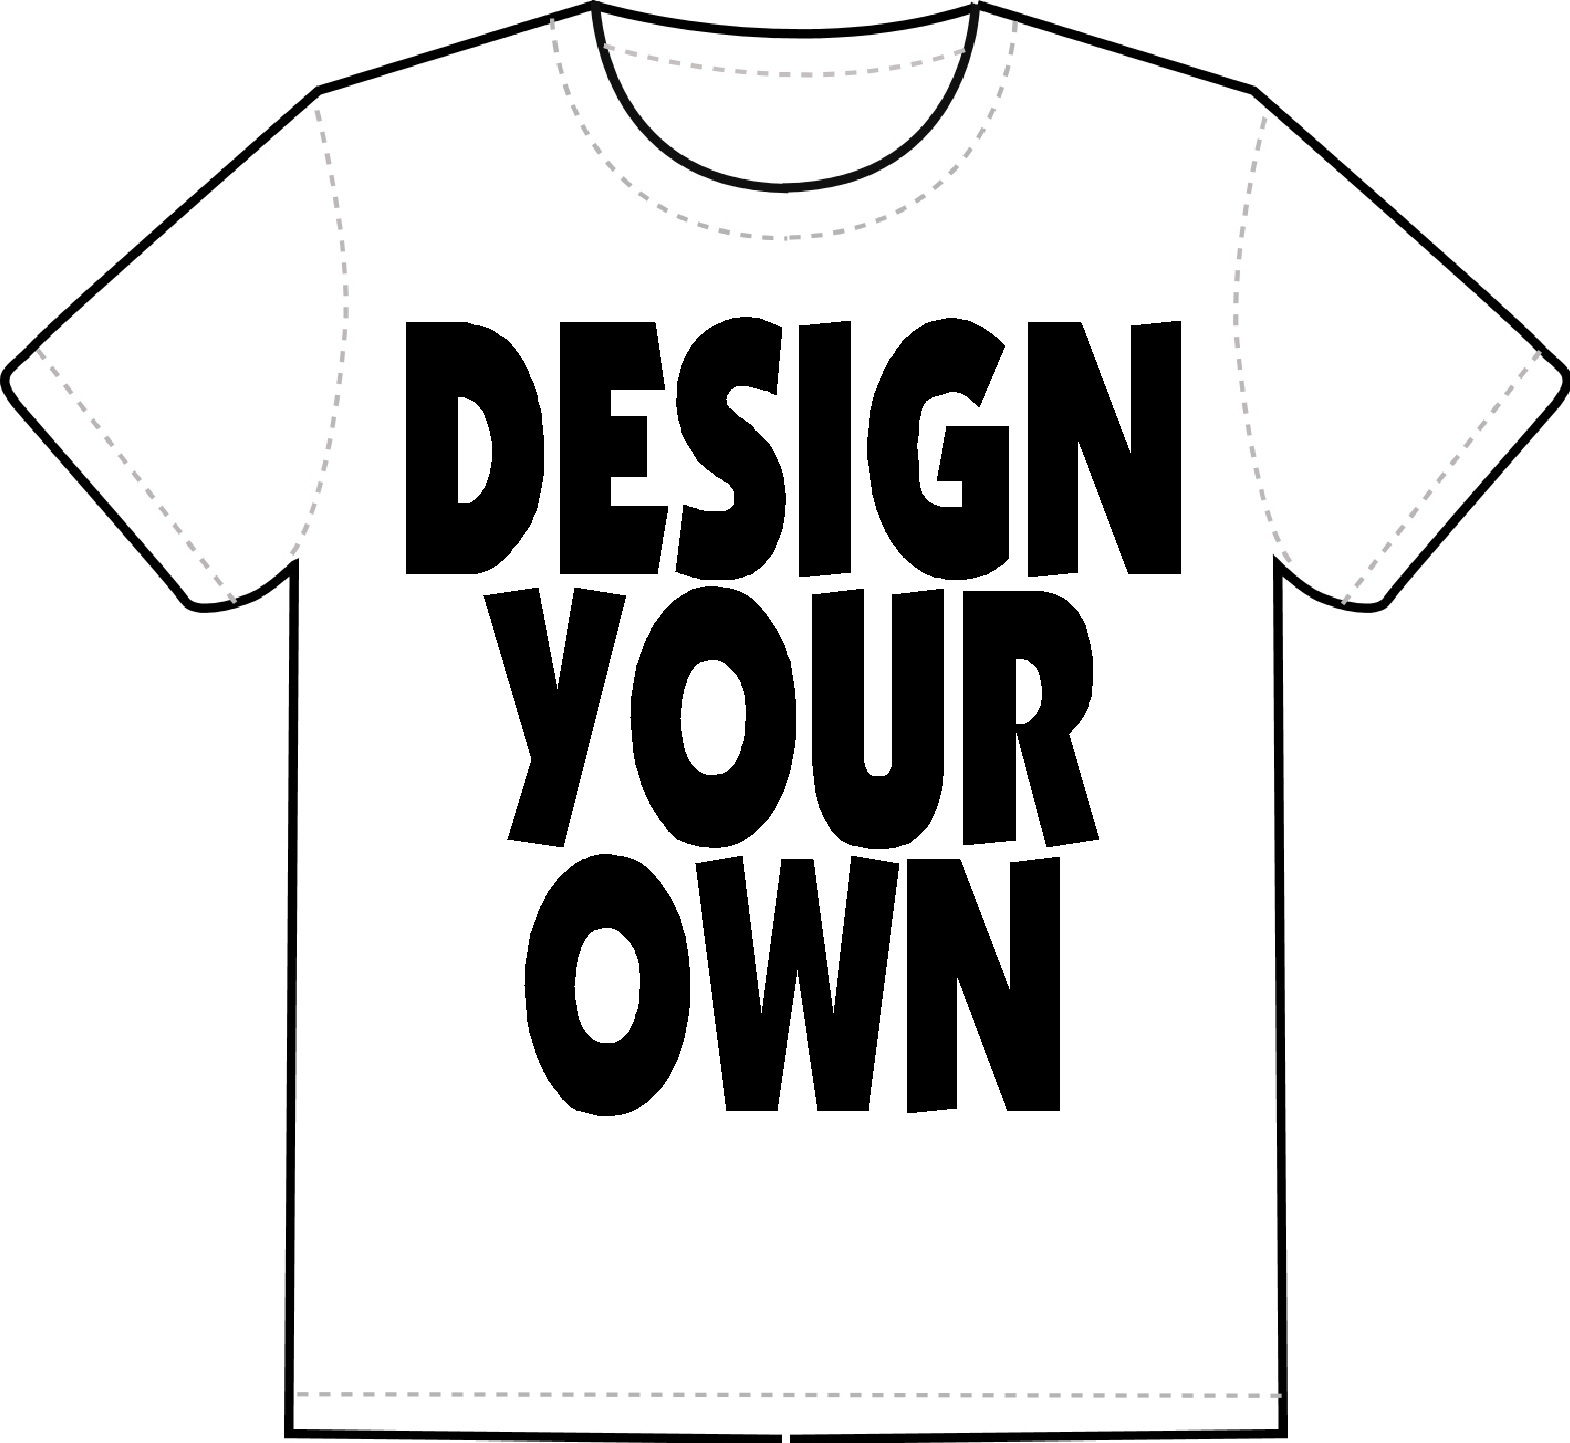 Design your own stag t shirt s for Create t shirt store online